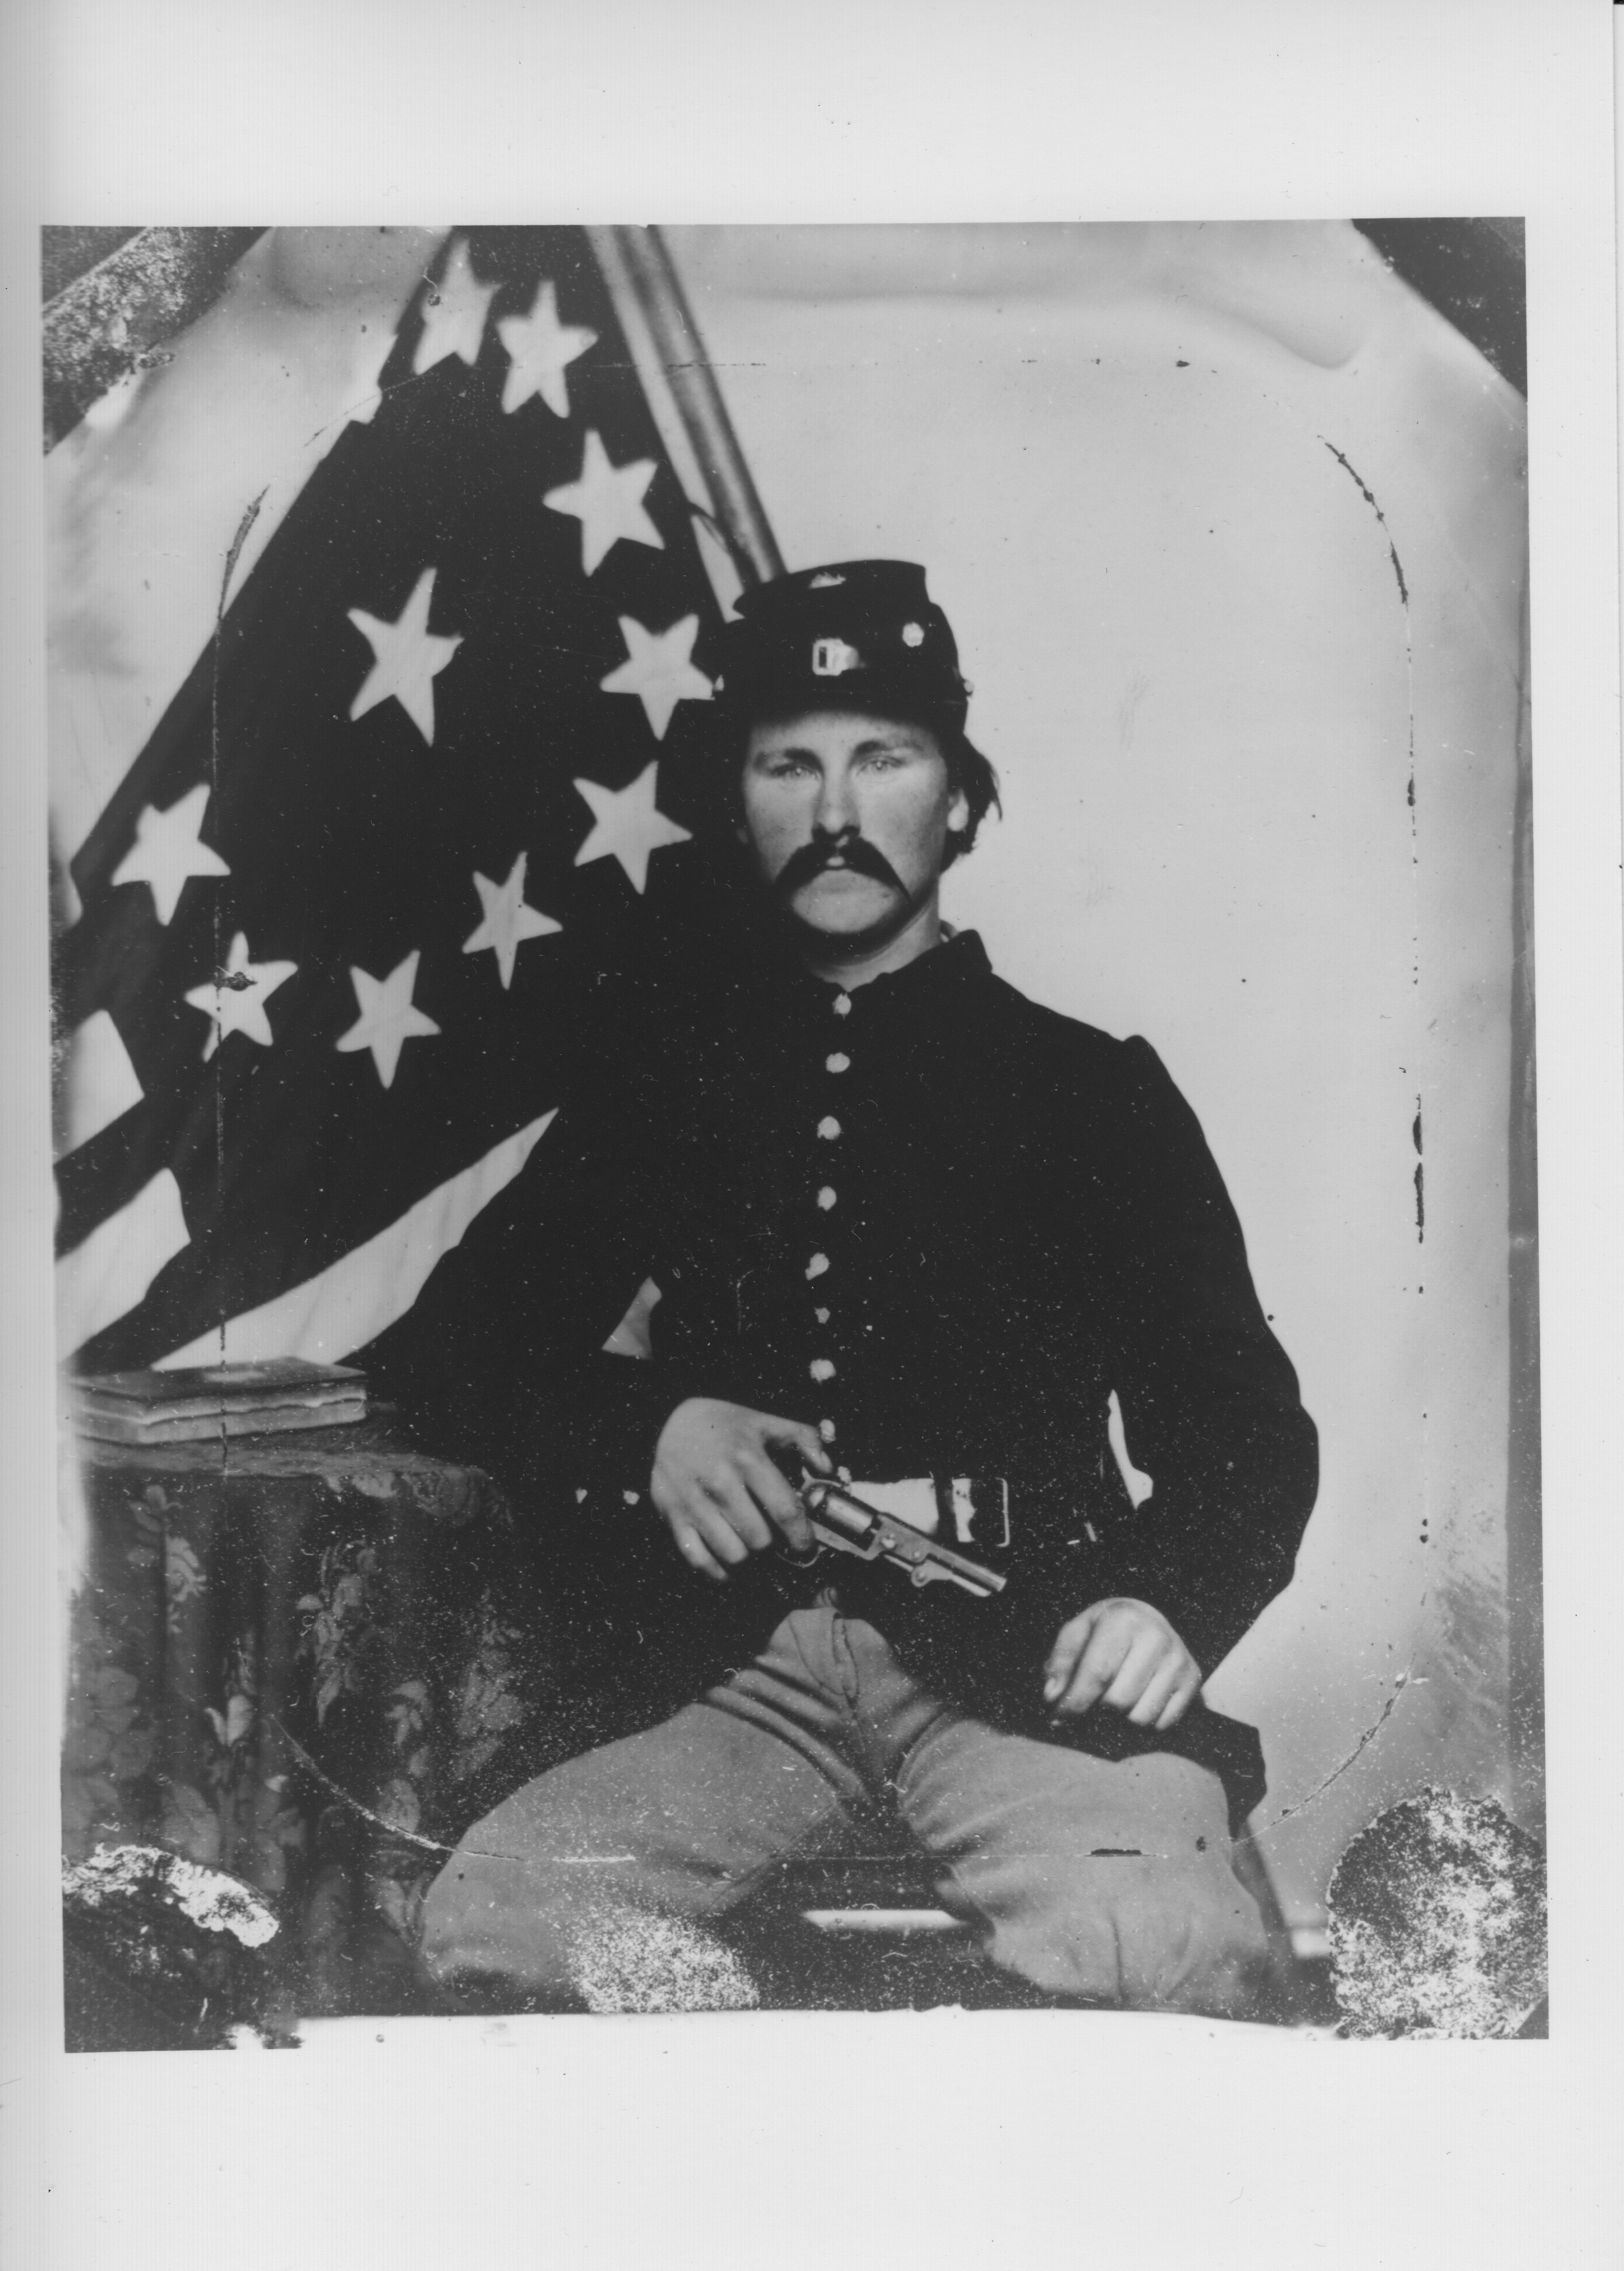 What were some of the terms and conditions of an honorable discharge in the American Civil War?